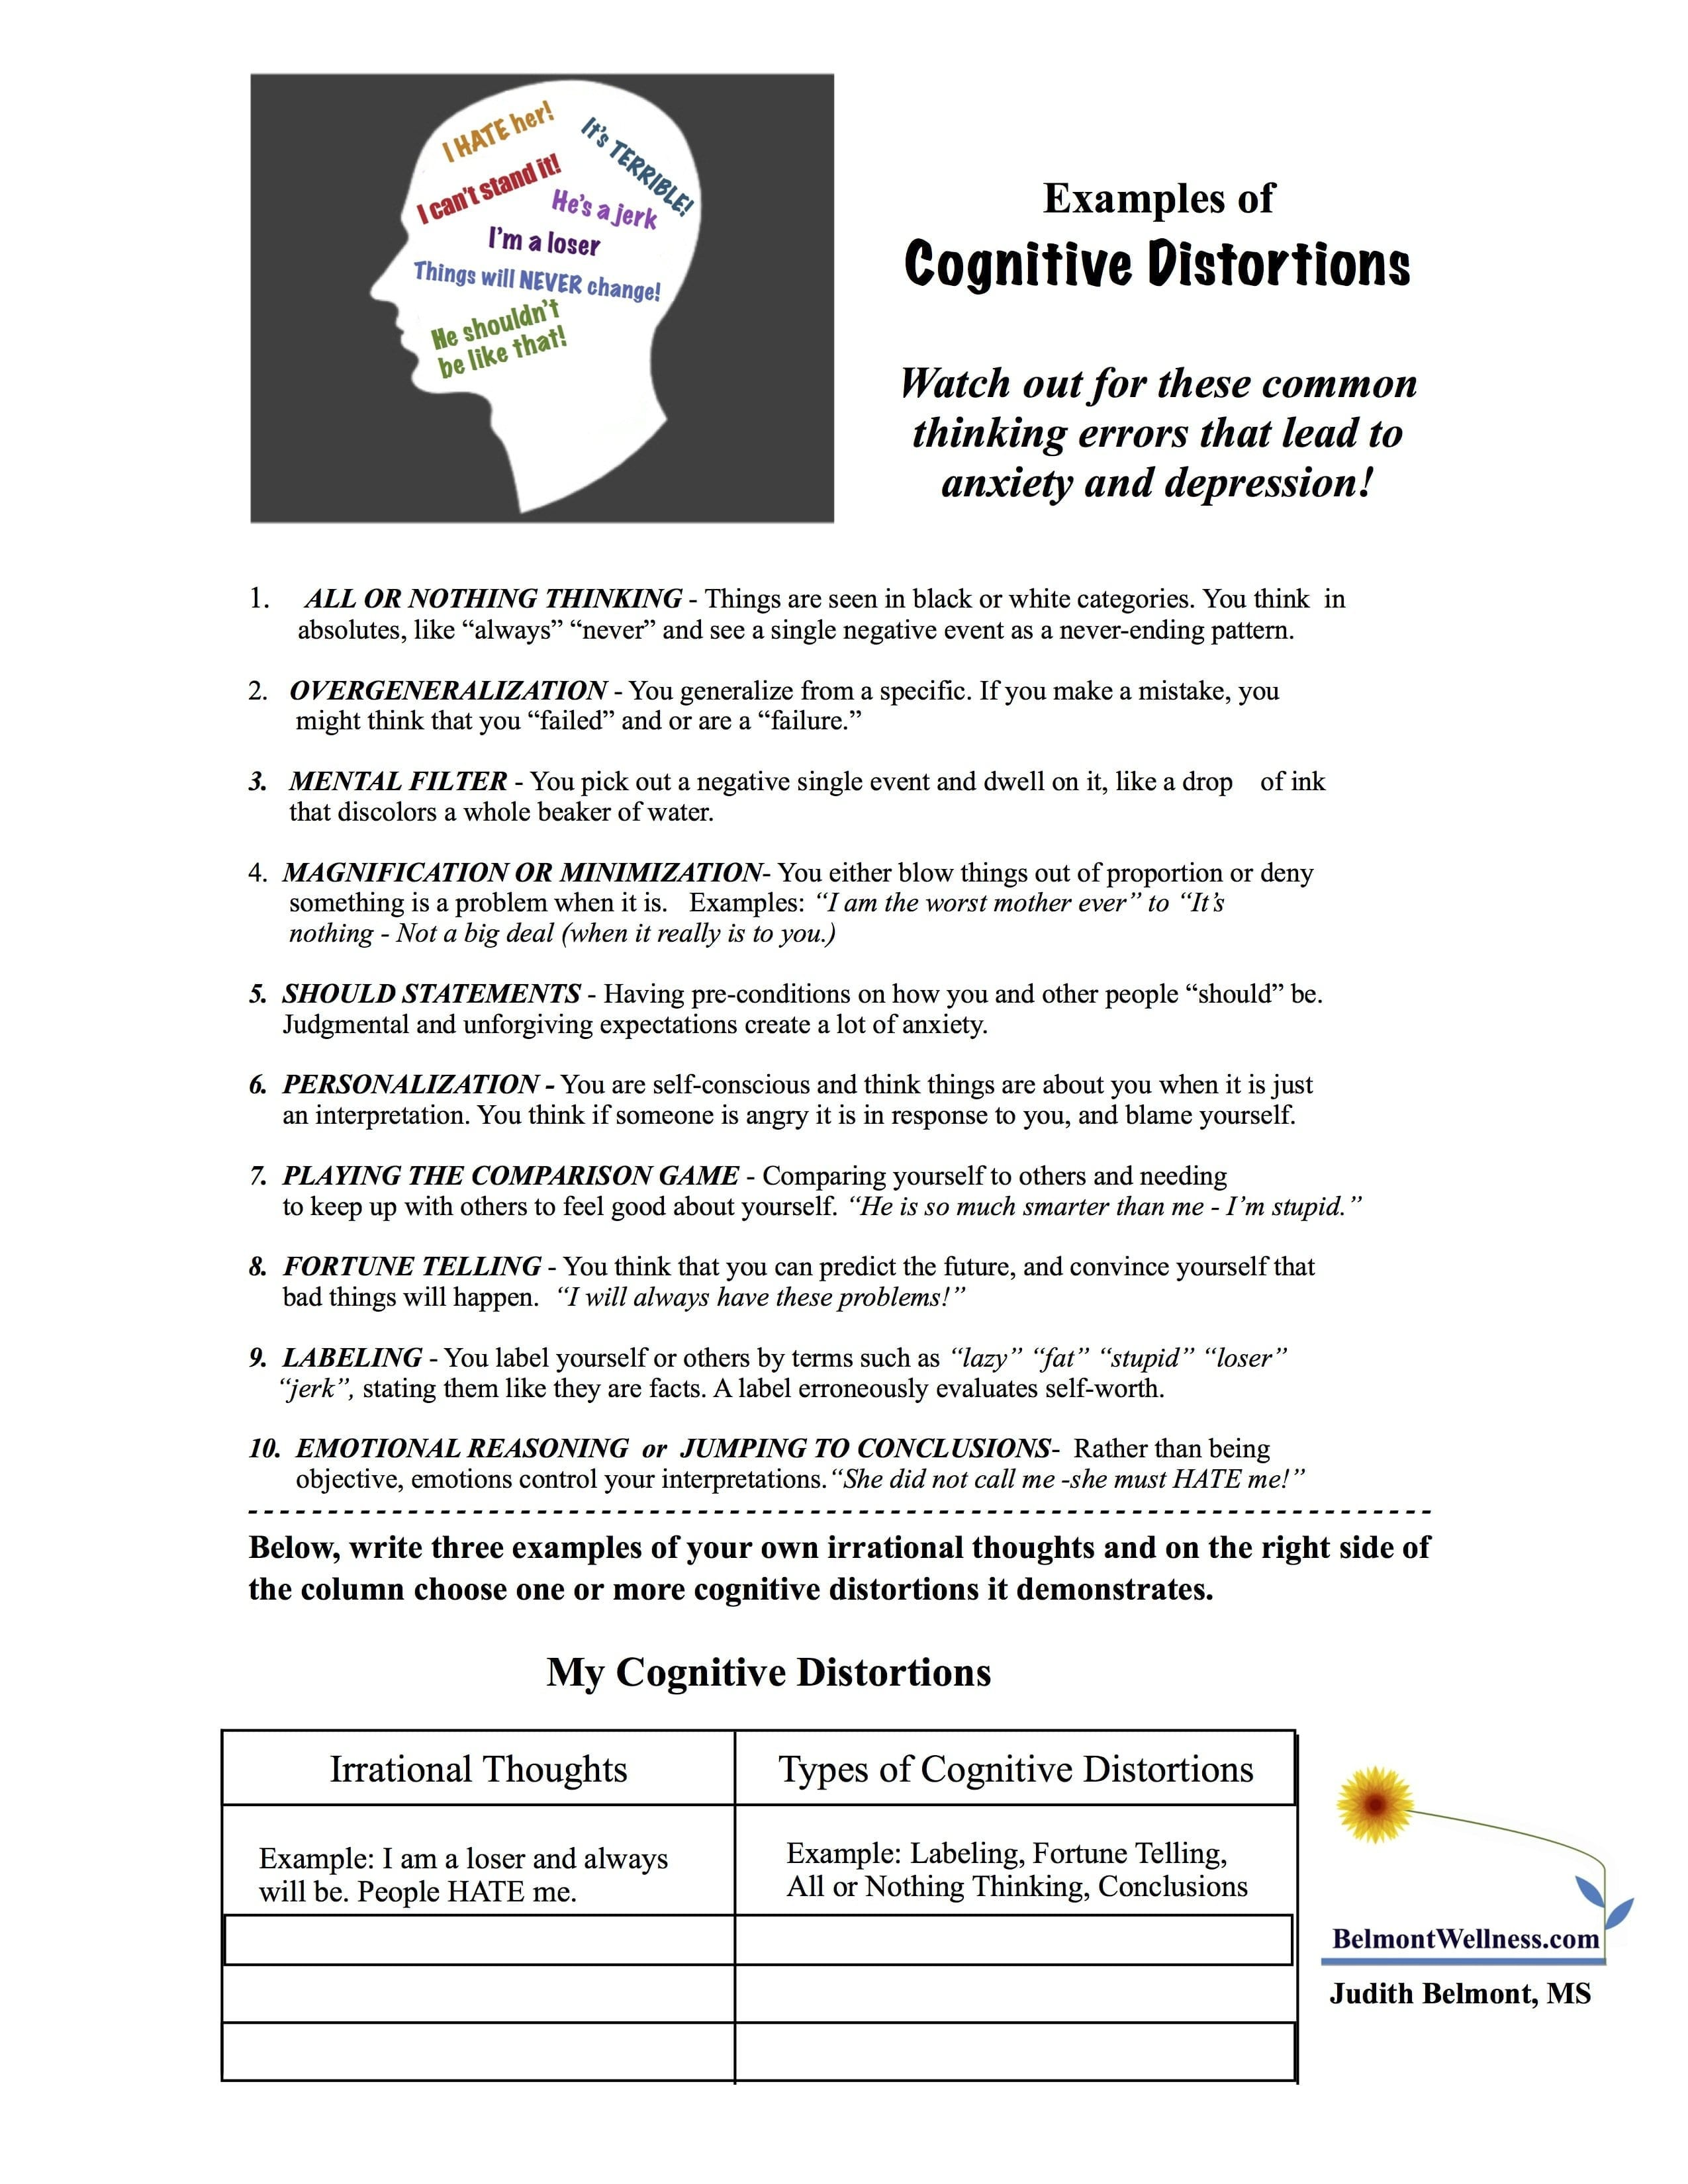 Psychoeducational Handouts Quizzes And Group Activities  Judy As Well As Coping Skills Worksheets For Youth